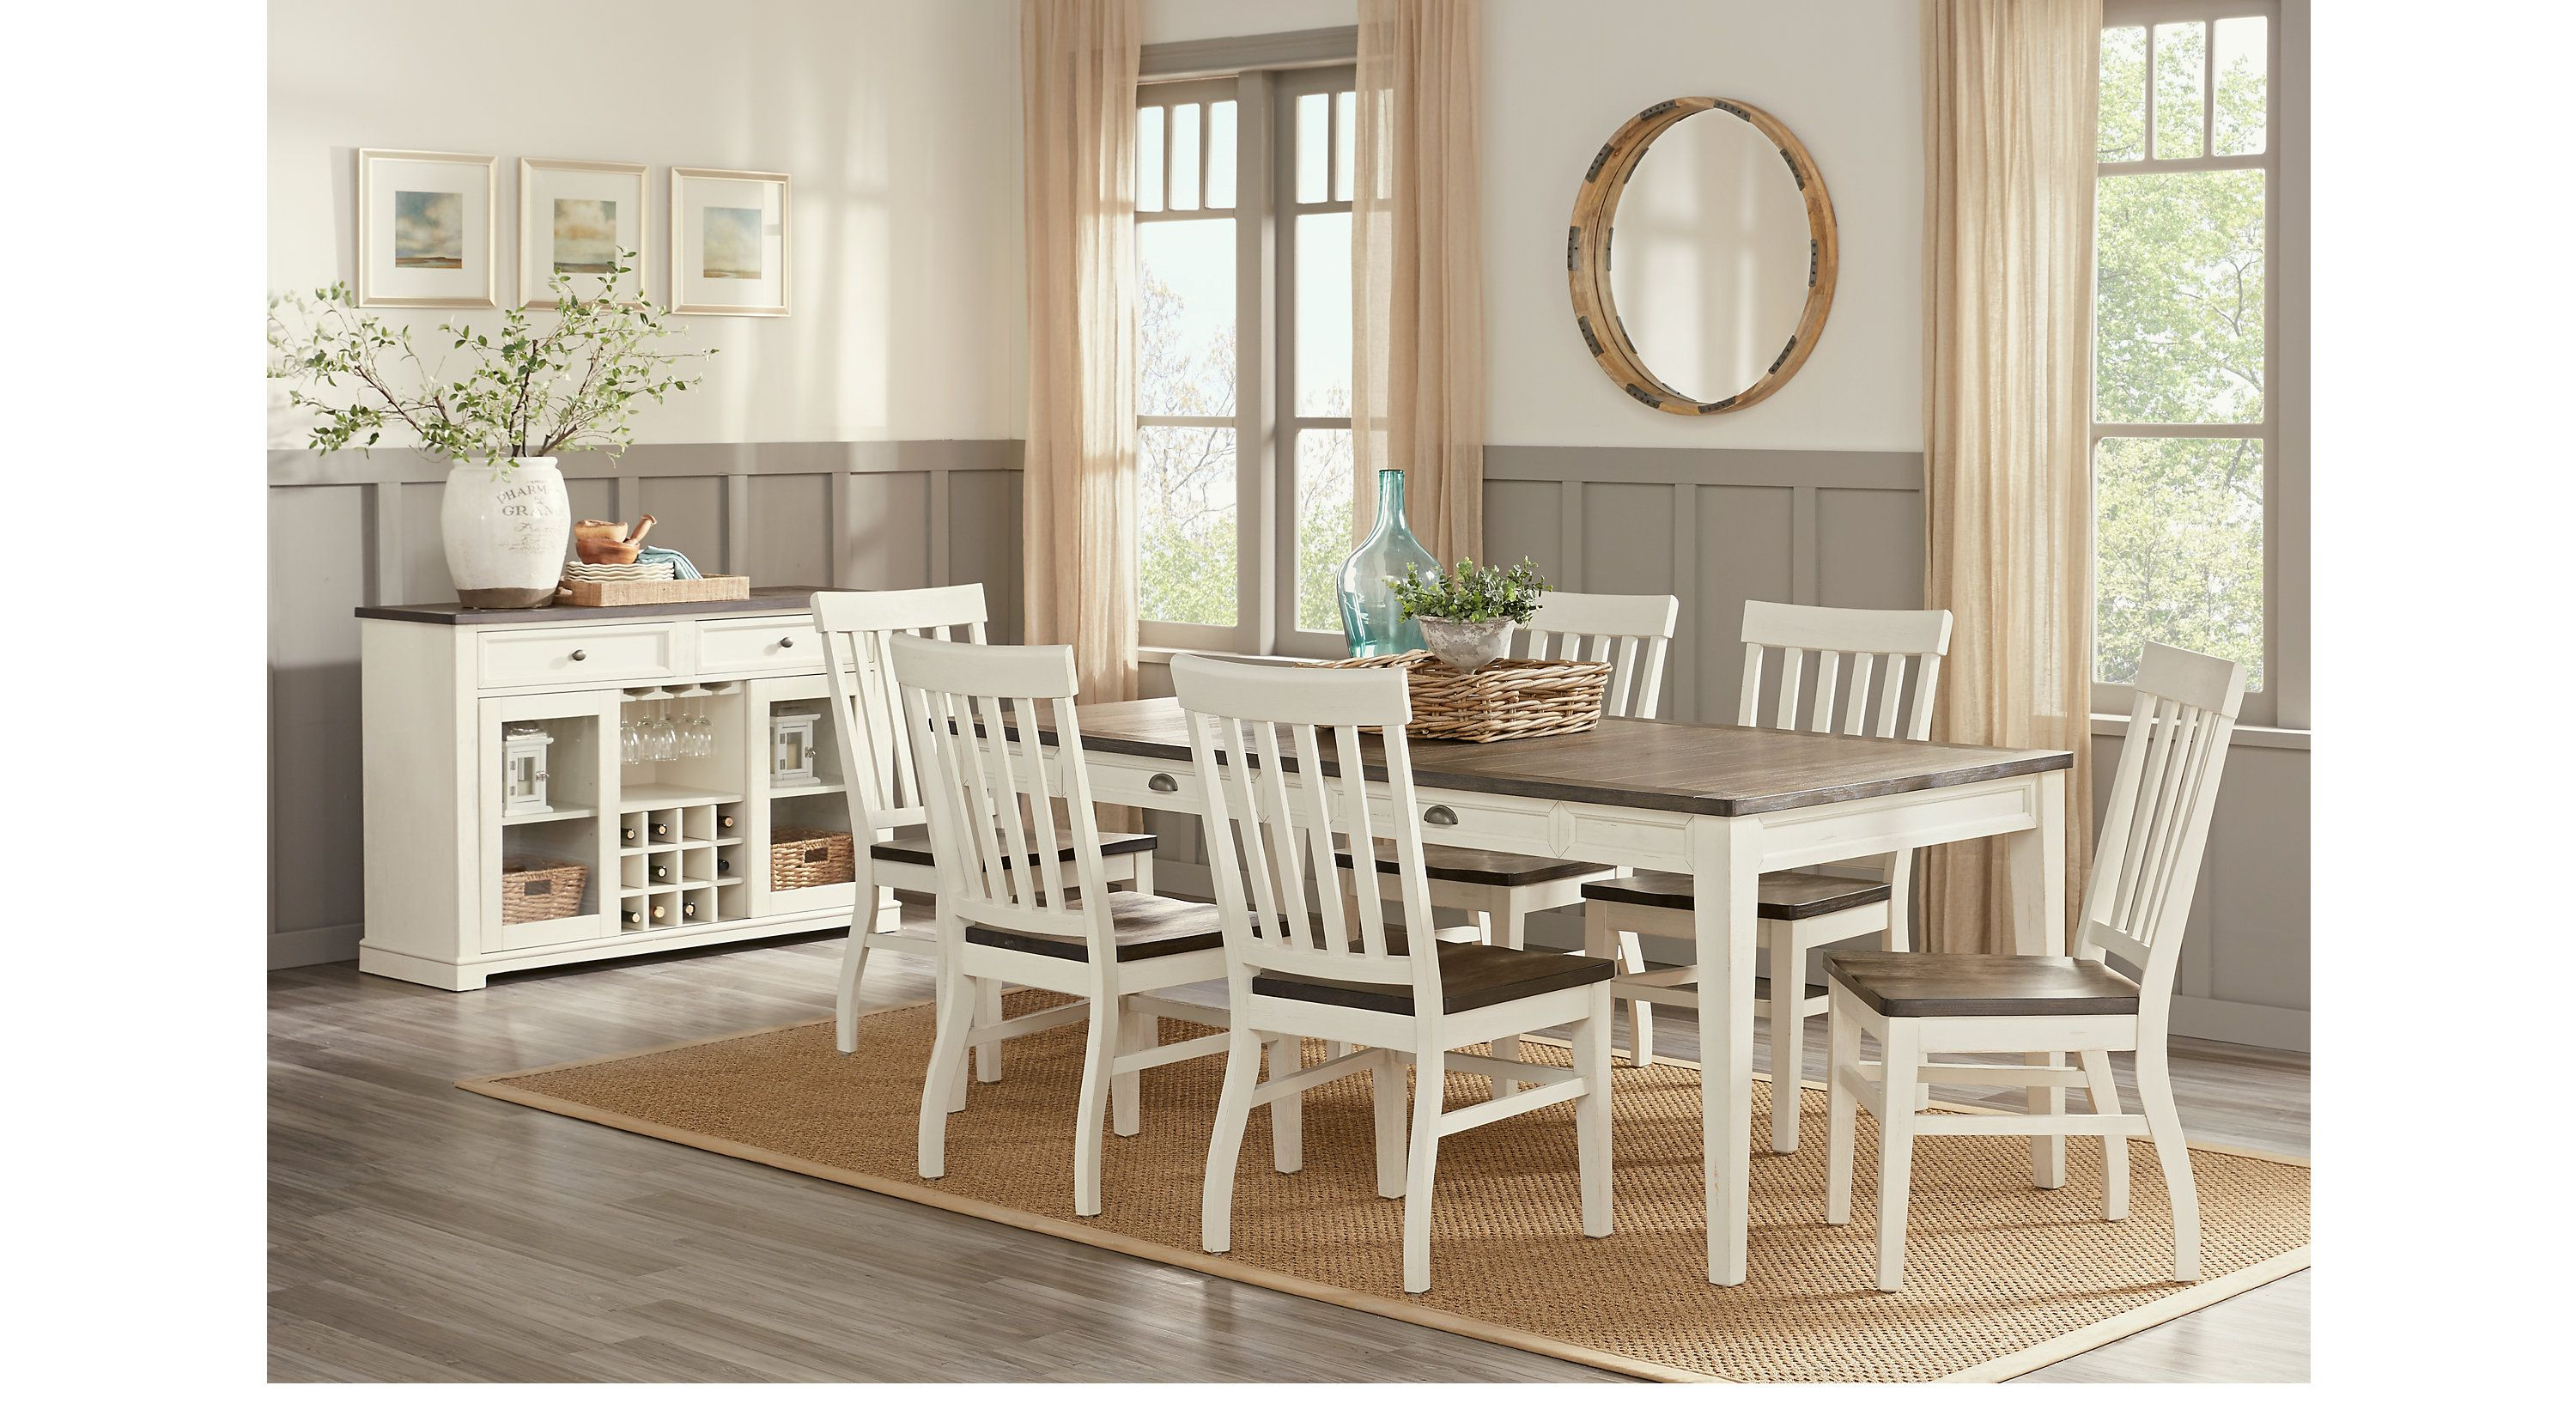 Keston White 5 Pc Rectangle Dining Room Casual Casual Dining Room Furniture Dining Room Sets Casual Dining Room Set